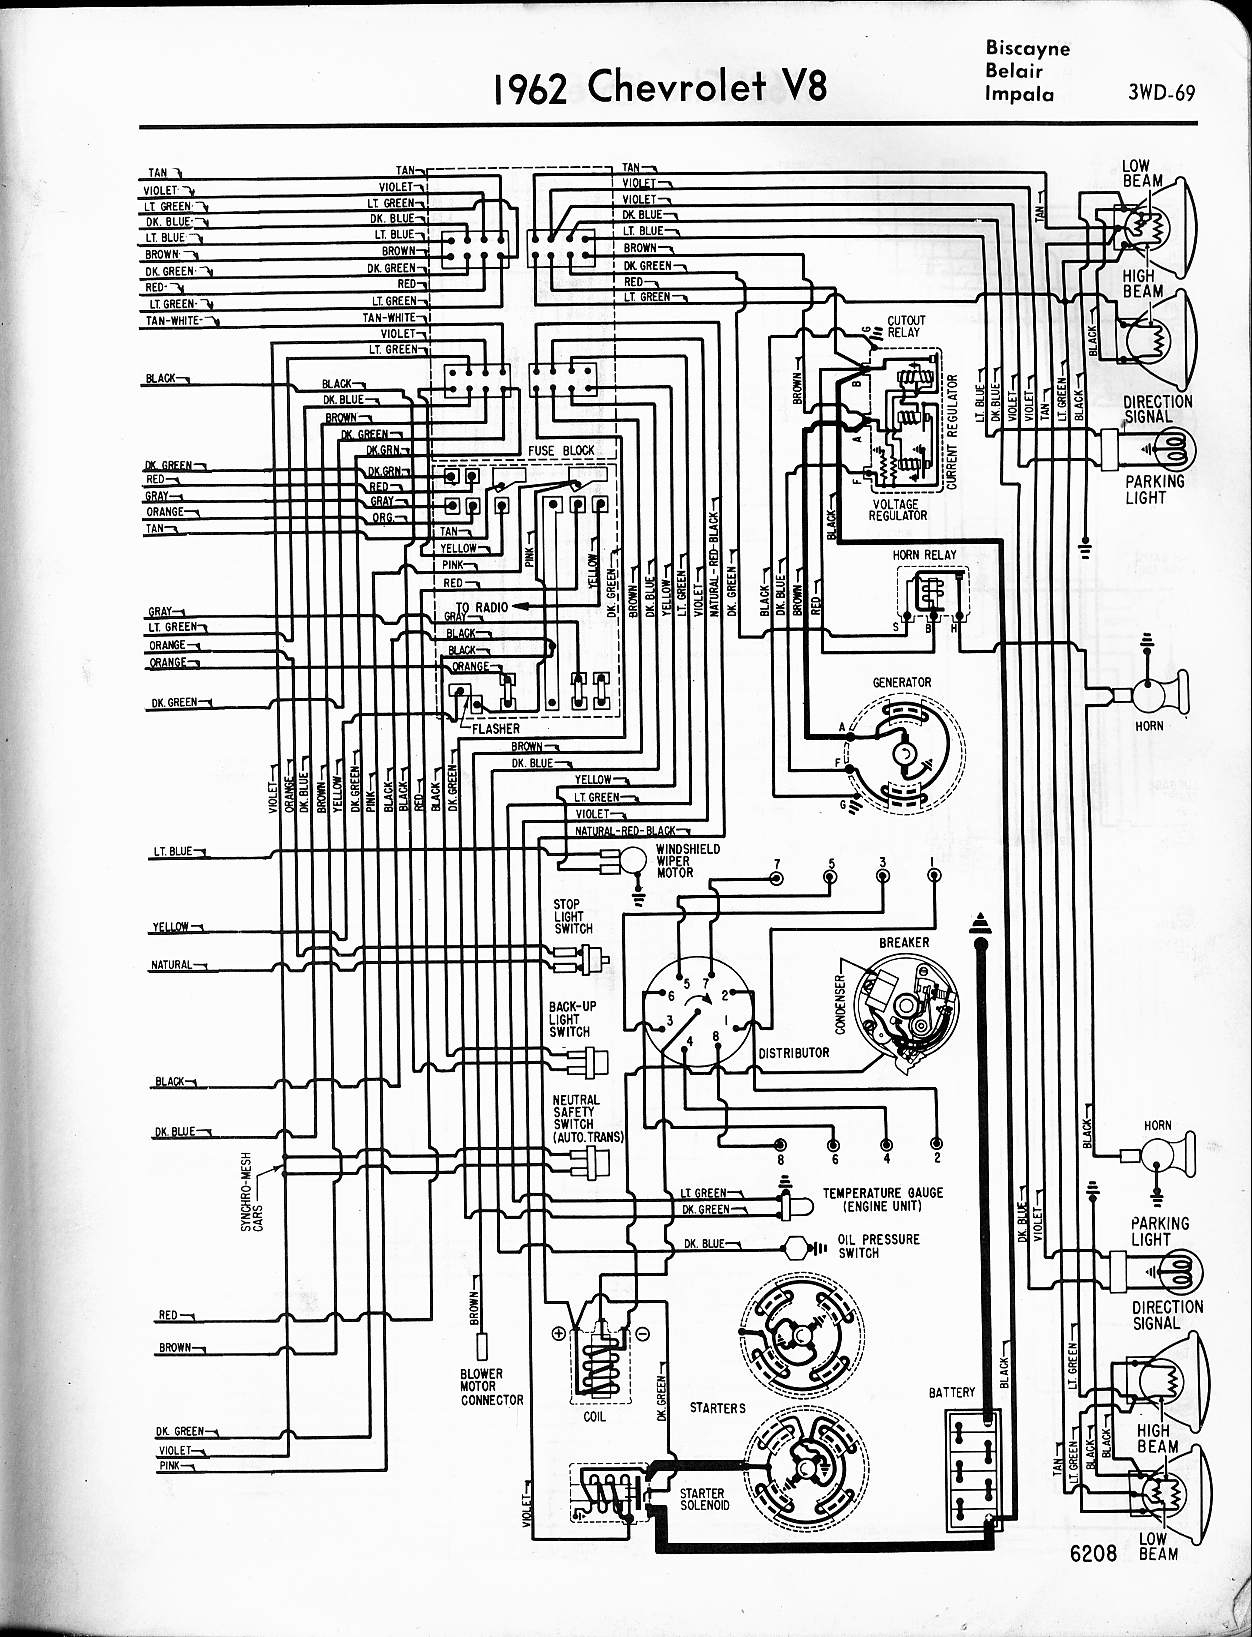 2005 chevy impala wiring diagram Collection-1963 impala wiring diagram v8 wiring diagram u2022 rh championapp co 2005 Impala Ignition Wiring Diagram 1967 Chevy Impala Wiring Diagram 18-p